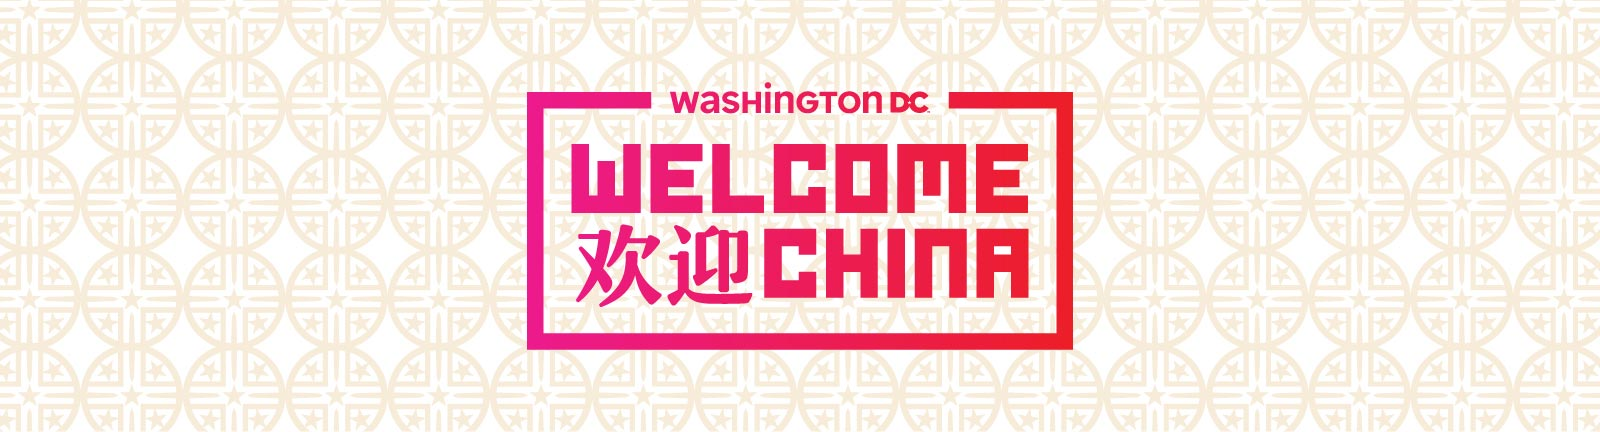 Welcome China - Washington, DC's official certification program and guide to attracting the Chinese travel and tourism market